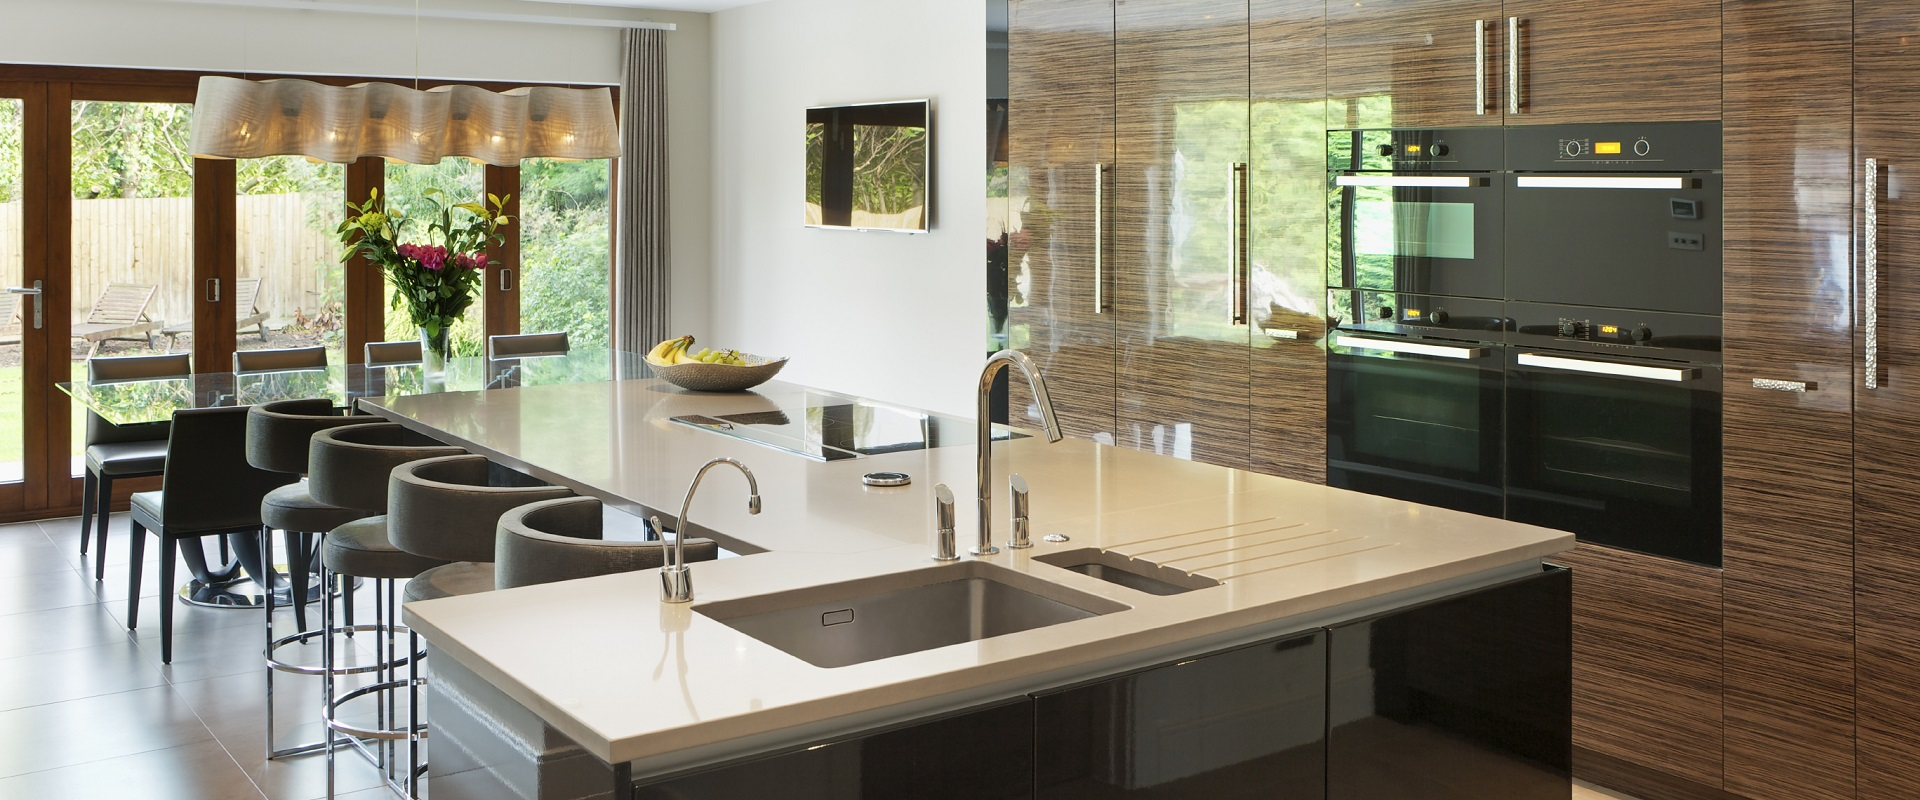 Kitchens rf builders for R f bathrooms and kitchens